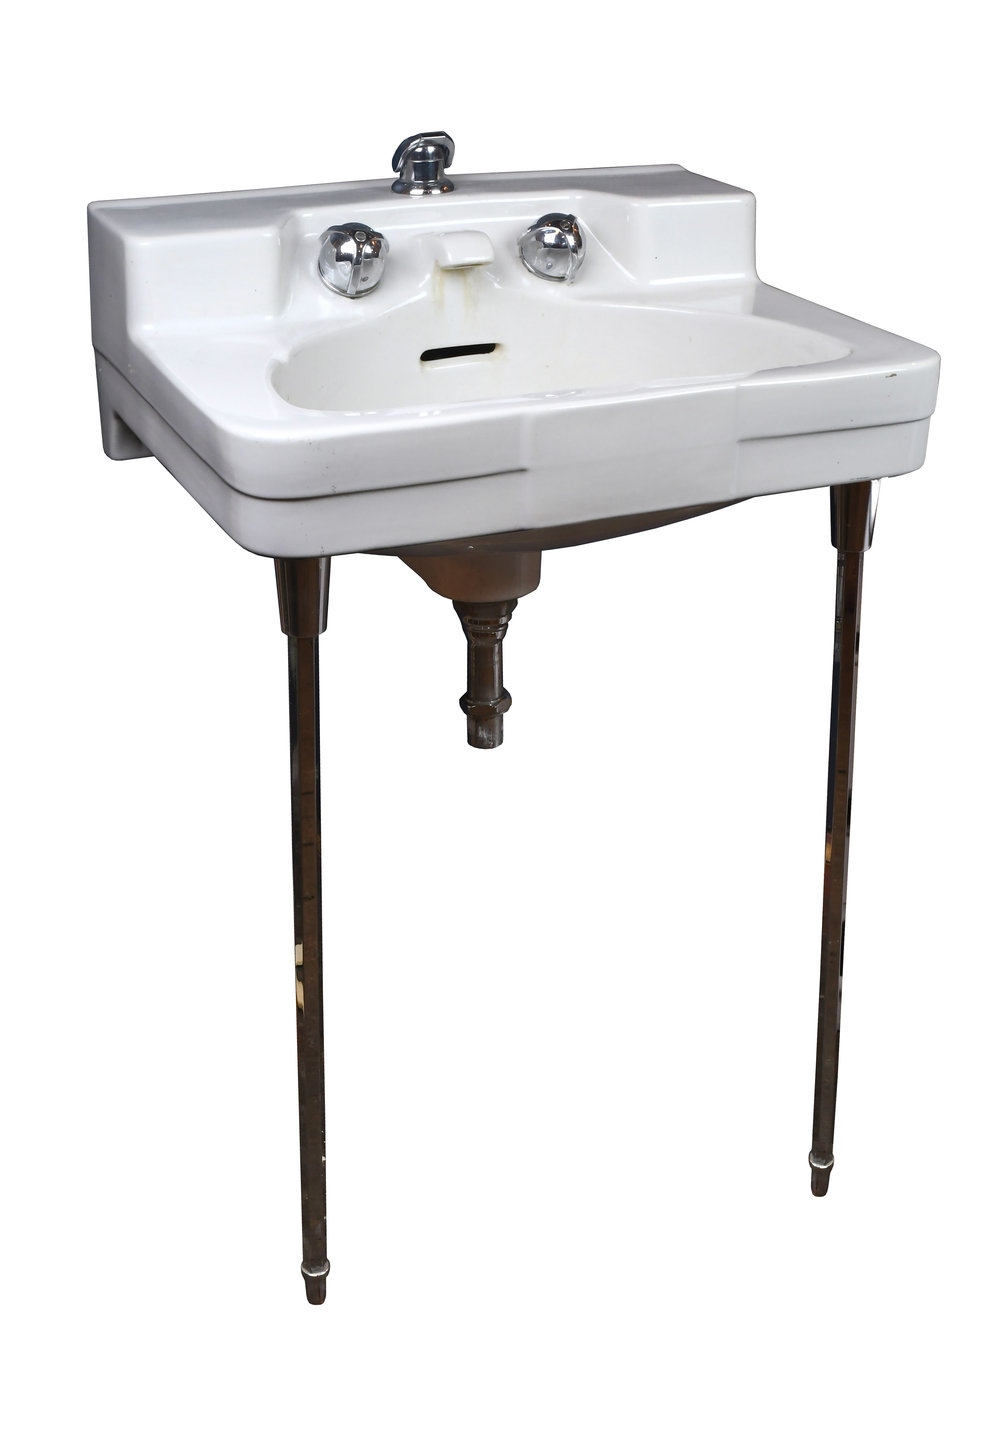 47249-1950s-wall-mount-sink-angle-view.jpg